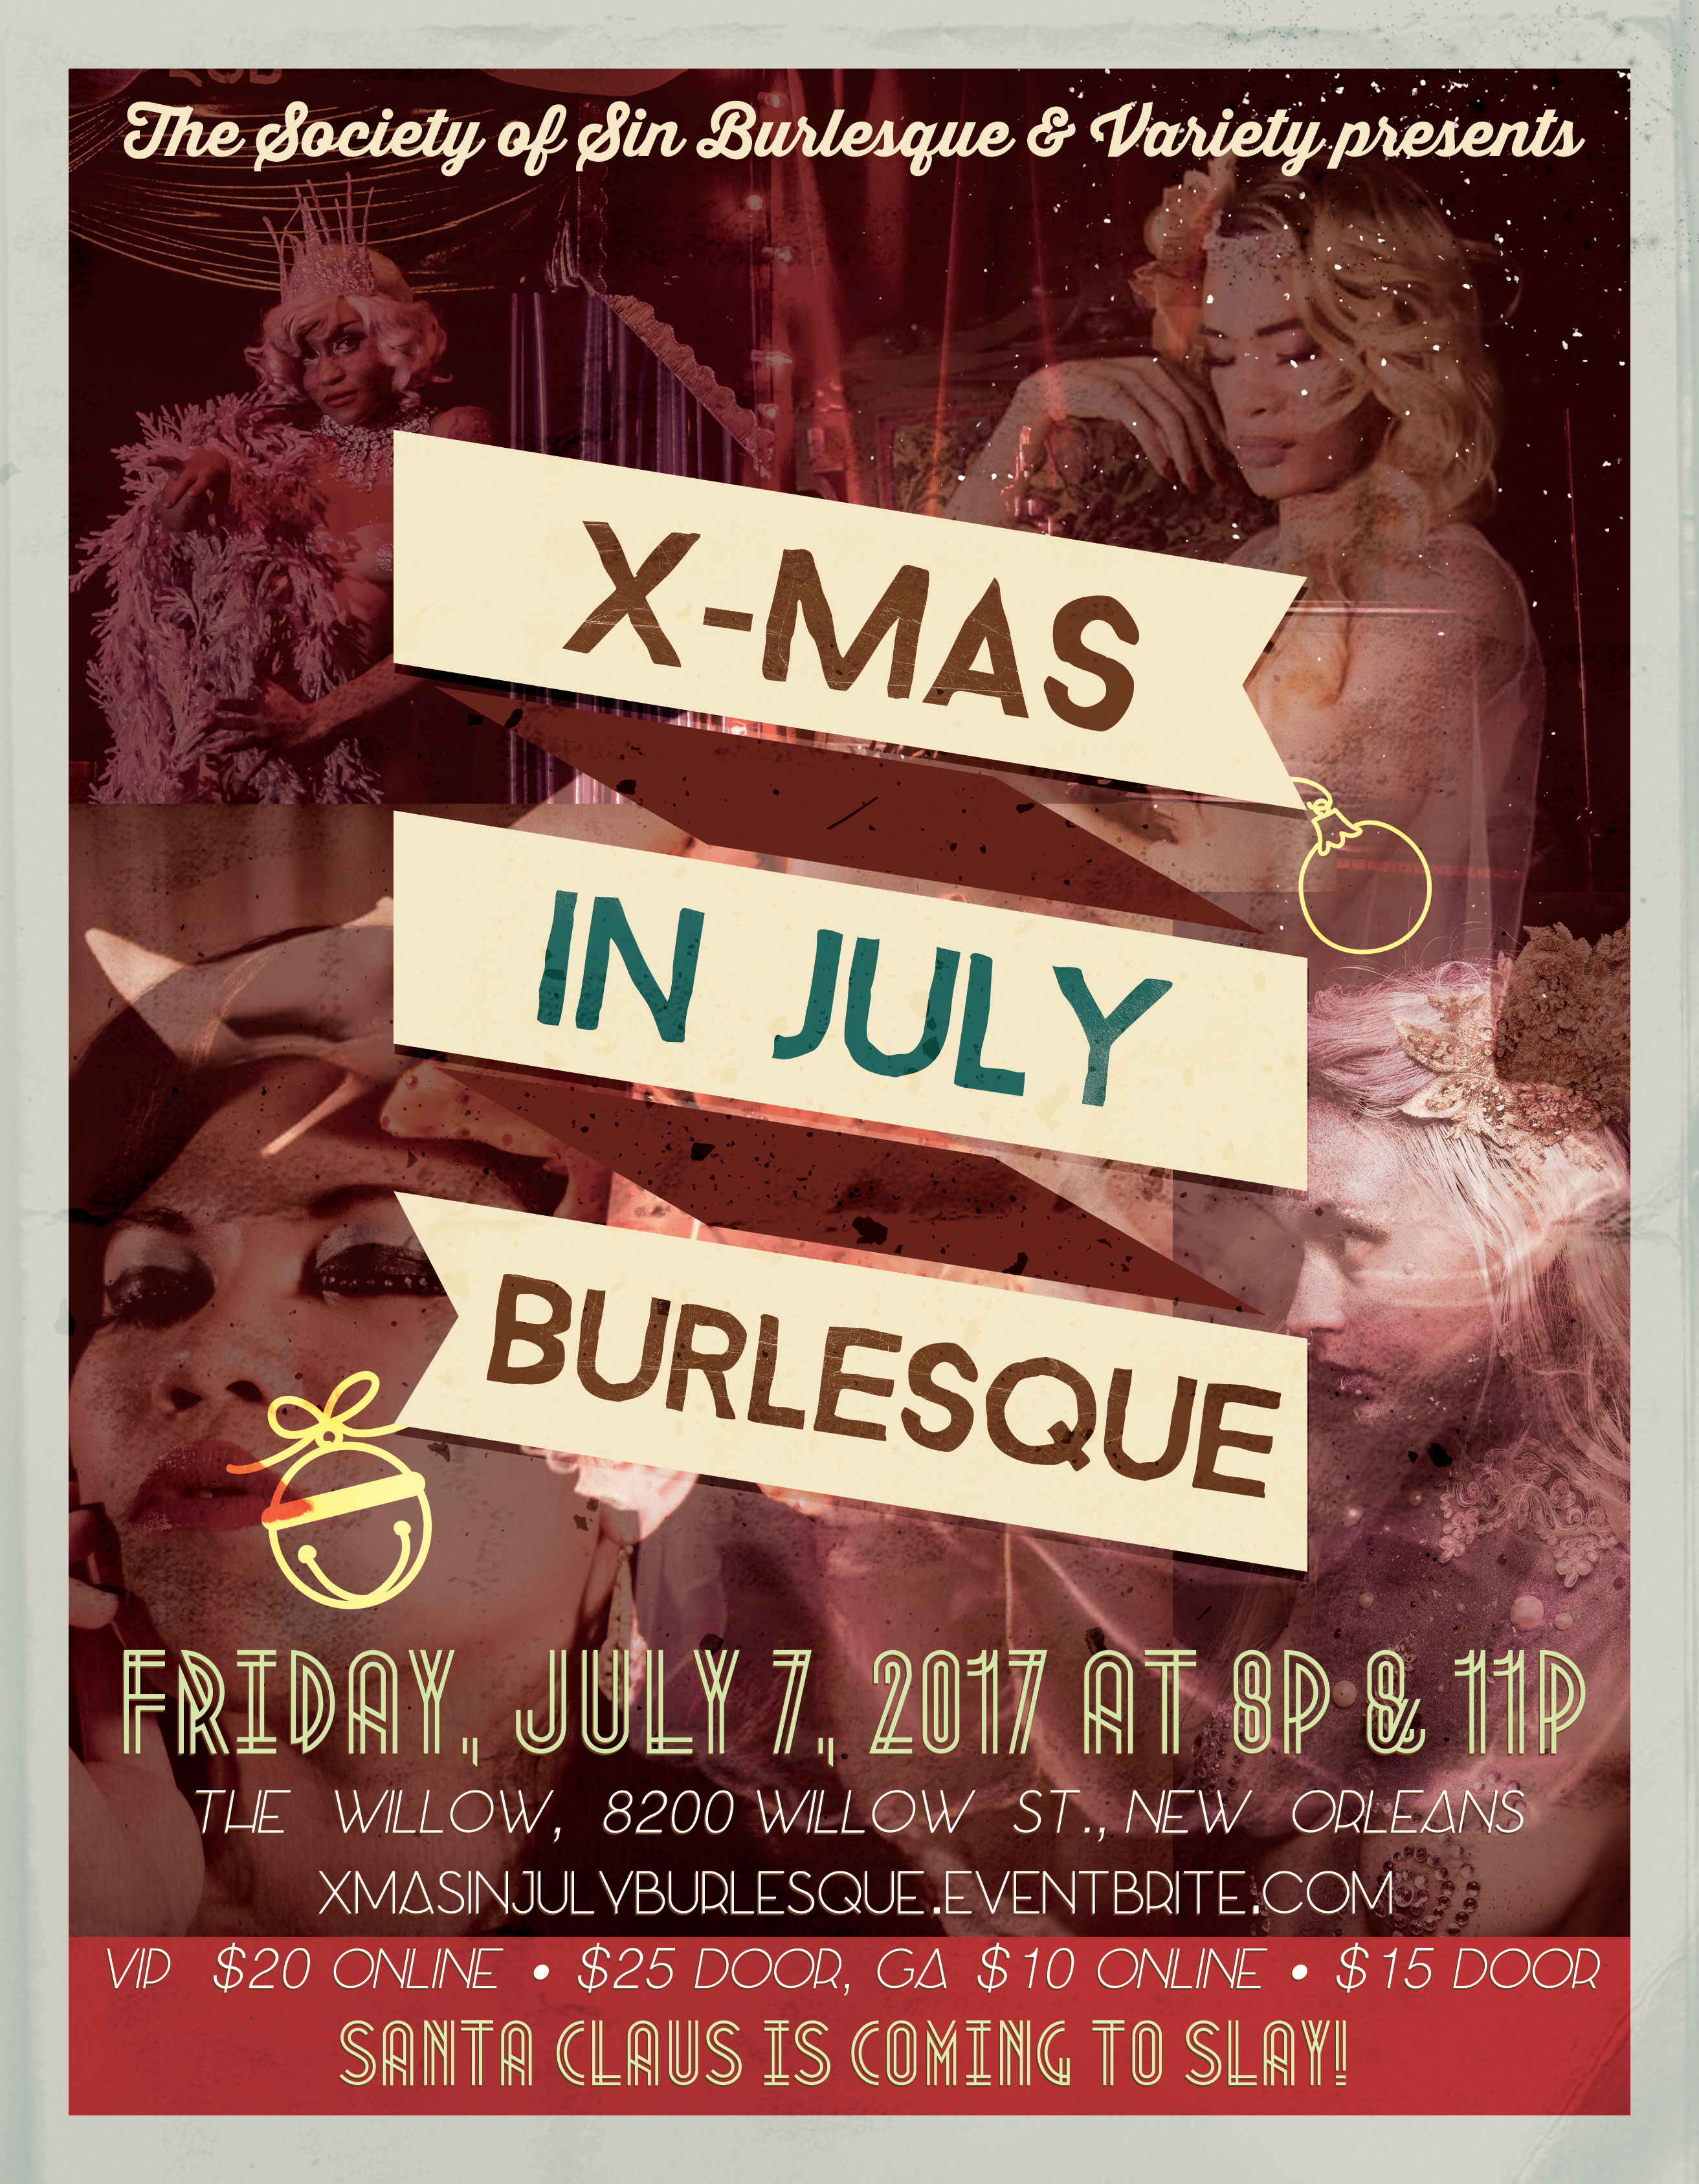 X-mas In July Burlesque